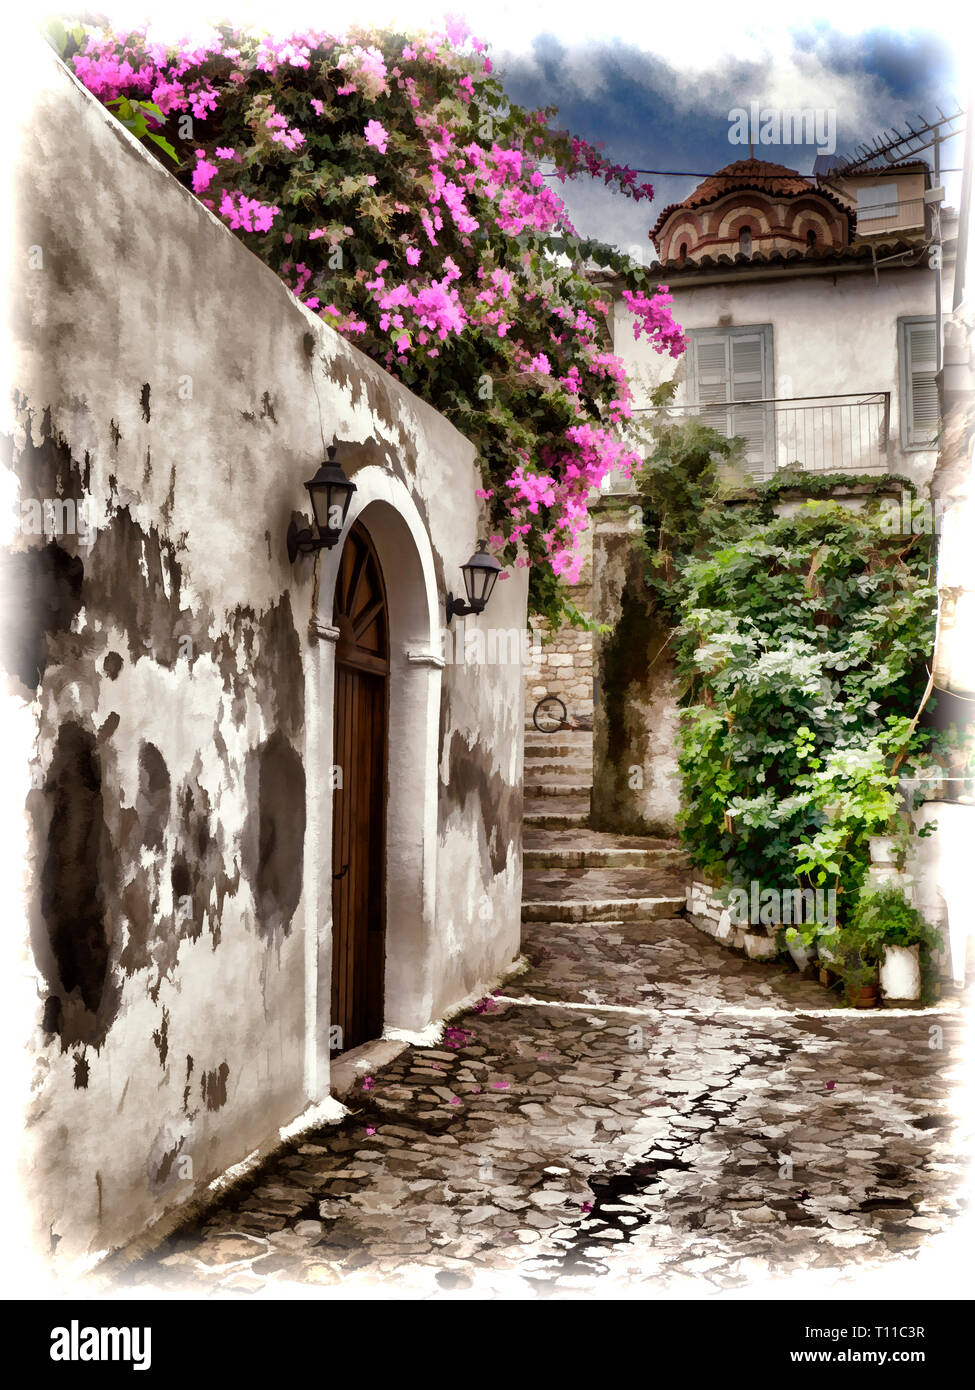 A street in Koroni in Greece on the Peloponnese - Stock Image